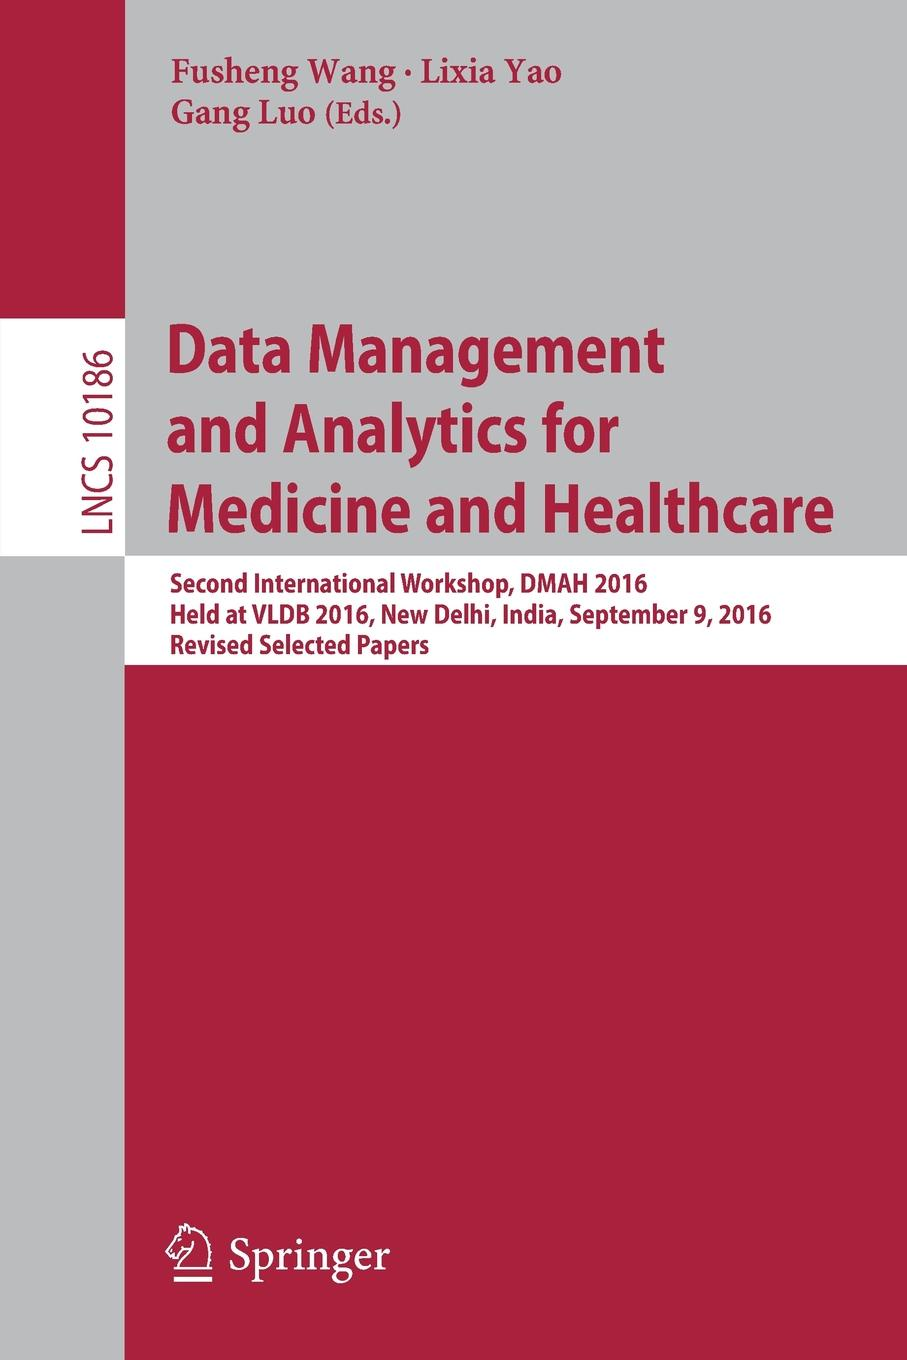 Data Management and Analytics for Medicine and Healthcare. Second International Workshop, DMAH 2016, Held at VLDB 2016, New Delhi, India, September 9, 2016, Revised Selected Papers 2016 new